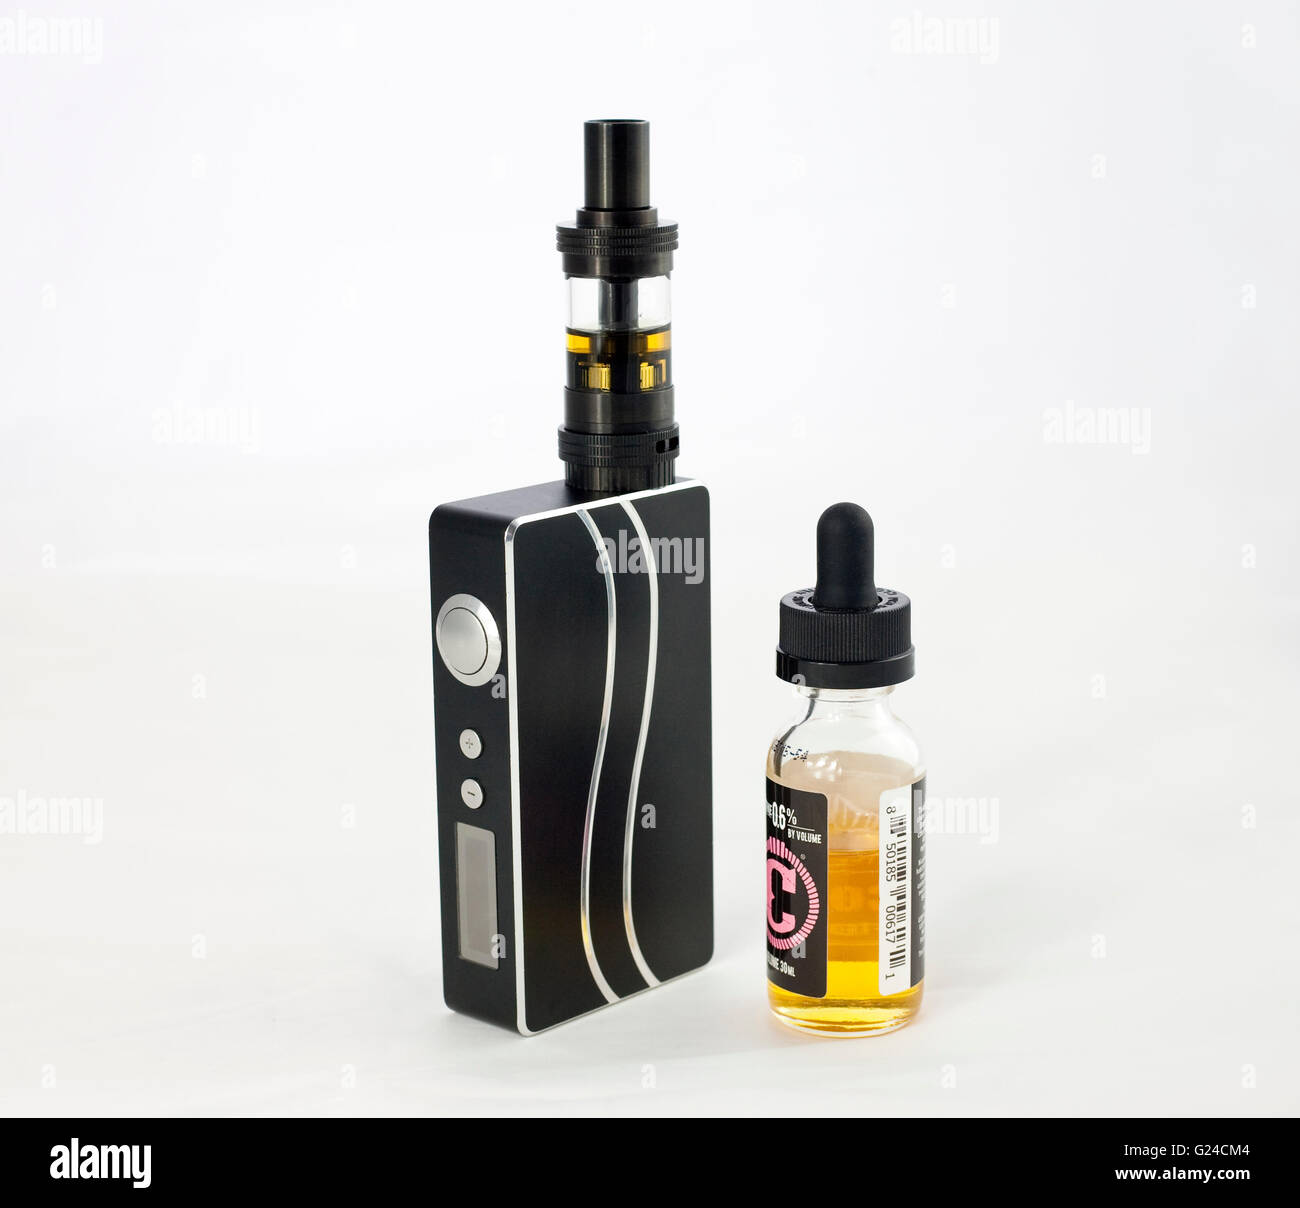 large E cigarette with tank used for vaping alongside a bottle of liquid - Stock Image